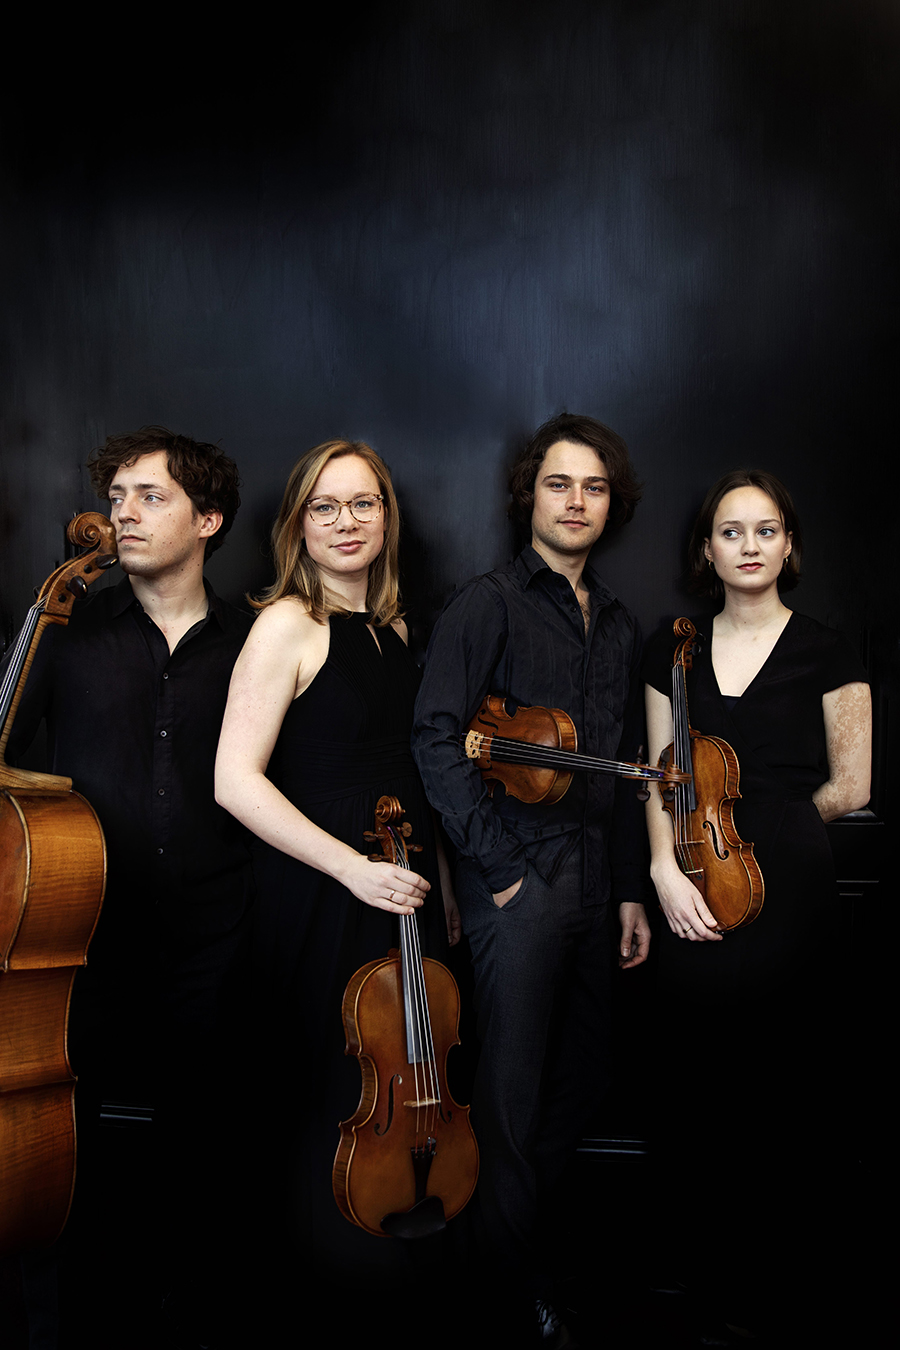 Animato_Quartet_photo_4_Sarah_Wijzenbeek_web